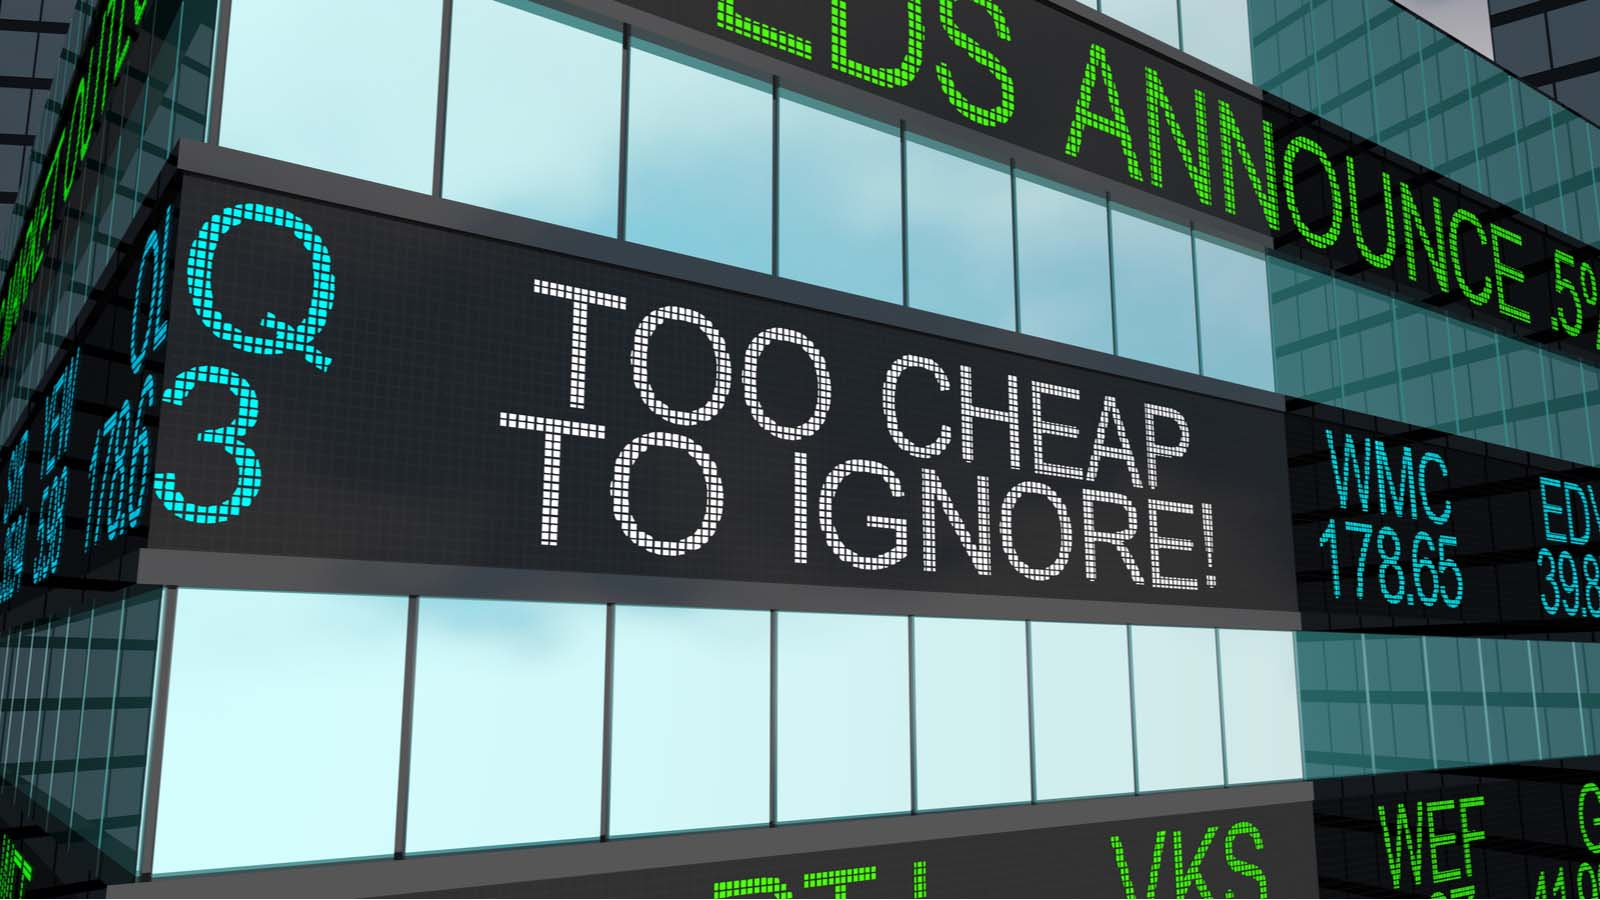 Best Inexpensive Stocks 2019 6 Cheap Stocks That Cost Less Than $10 | InvestorPlace